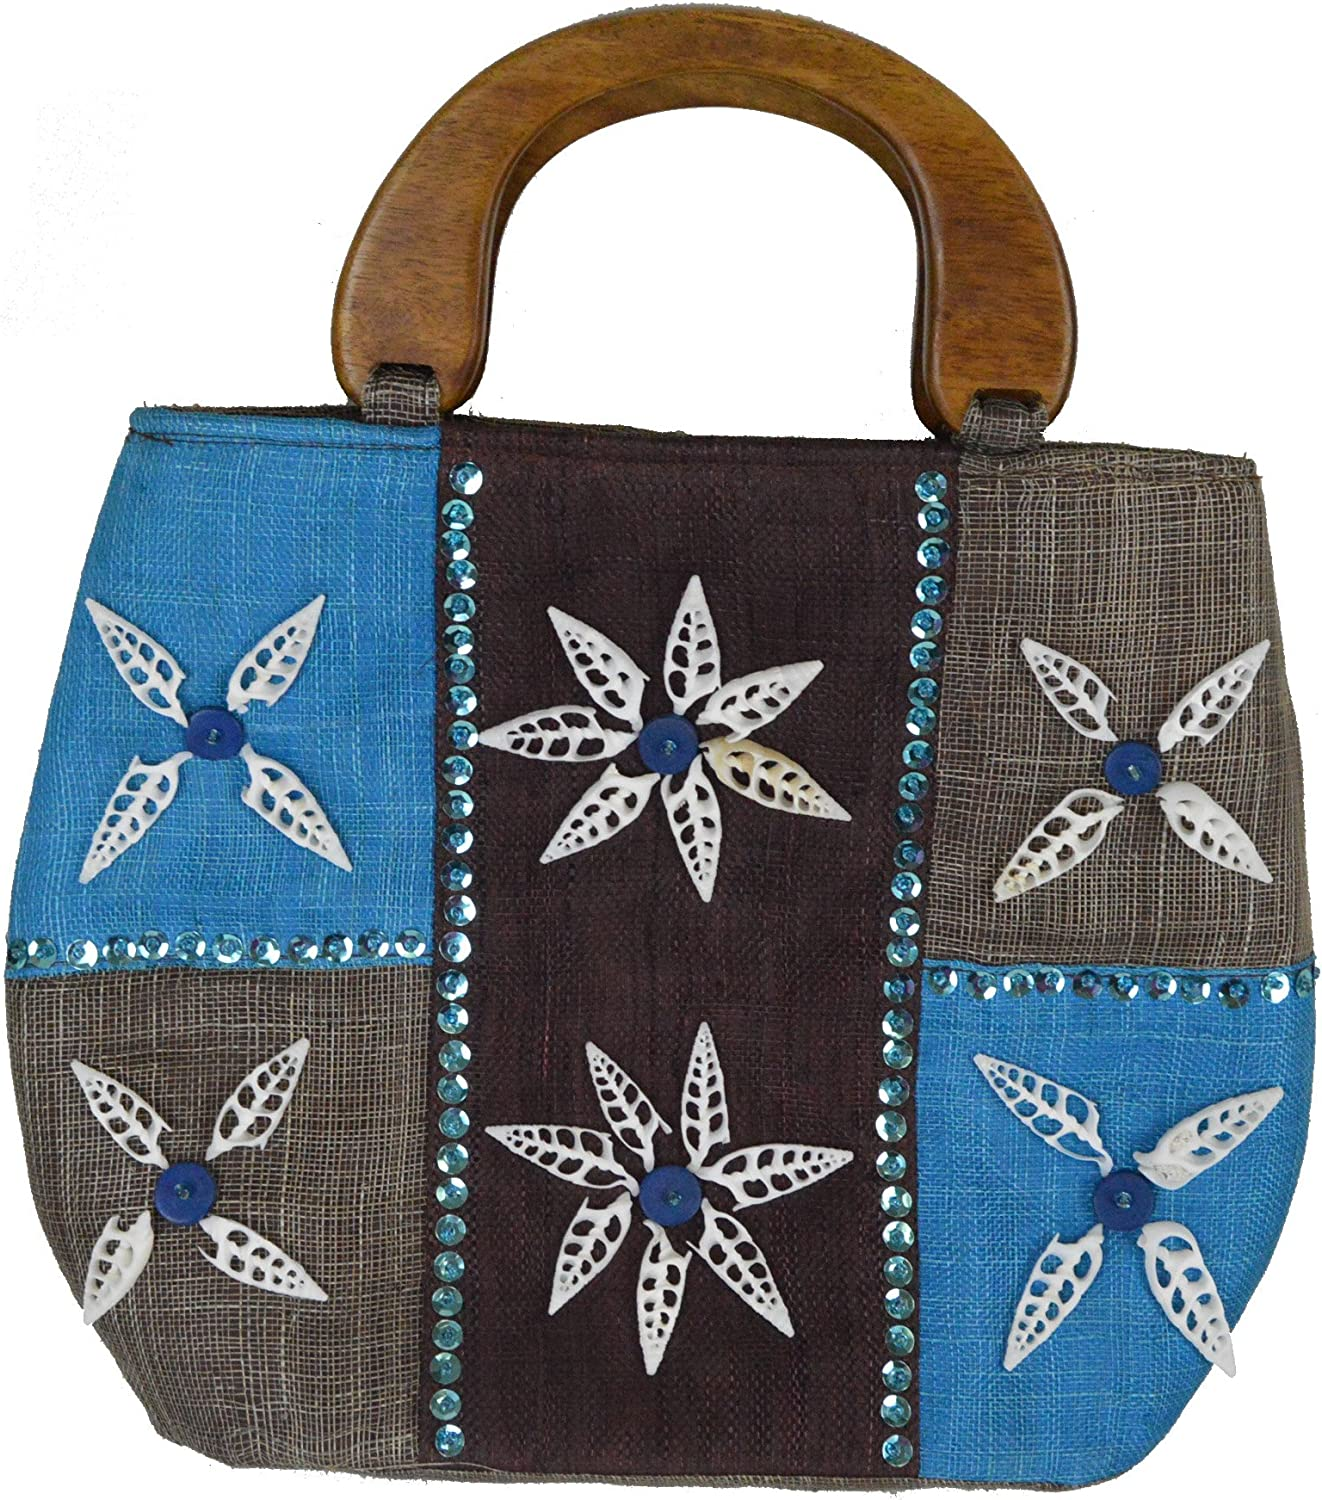 14 L Fiji Brown bluee ToteStyle Handbag with Flower Seashell Inlay and Double Roble Wood Handles